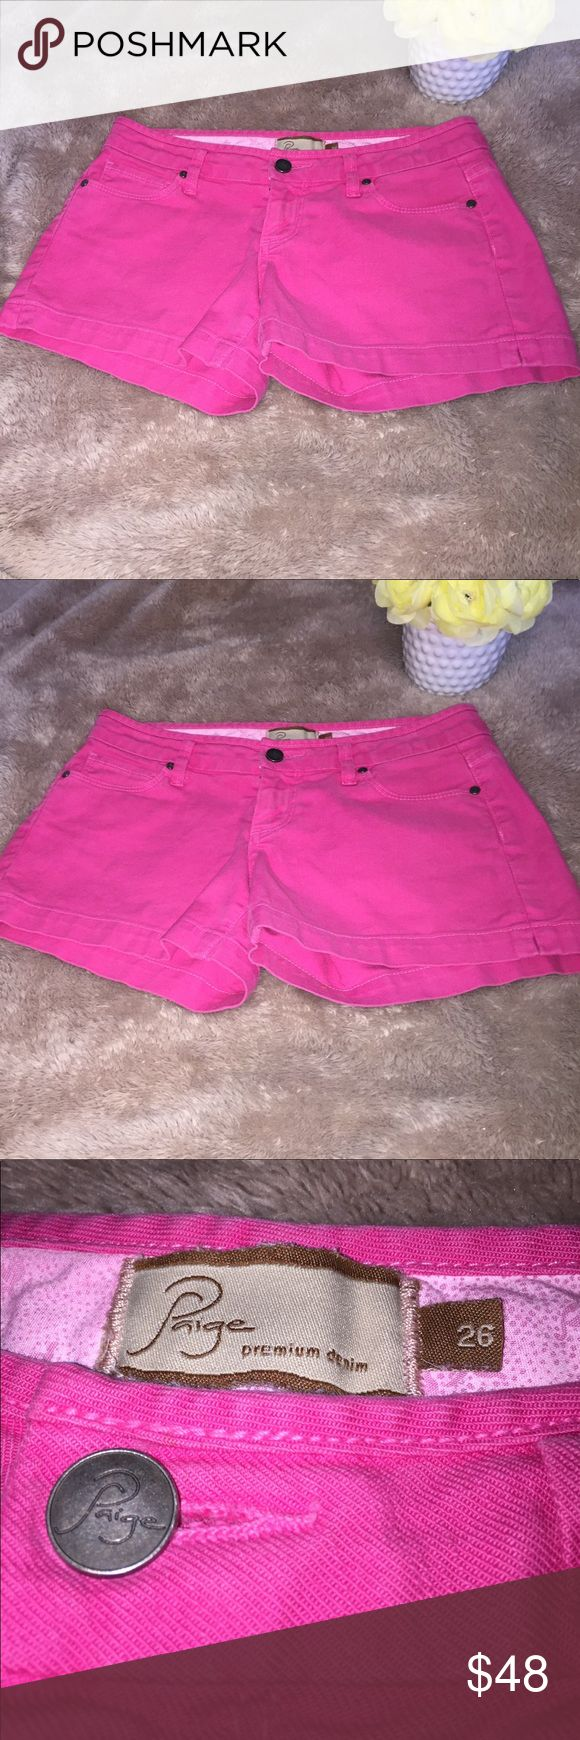 EUC PAIGE Premium Denim Canyon shorts pink size 26 EUC PAIGE Premium Denim Canyon shorts pink size 26. Excellent condition with no rips tears marks or stains. Lightly faded, as part of the natural dye process. SUPER ADORABLE! Approximate measurements when laid flat are waist 15, rise 7.5, inseam 3.5, length 10. Comes from a smoke free home, thank you! Paige Jeans Shorts Jean Shorts